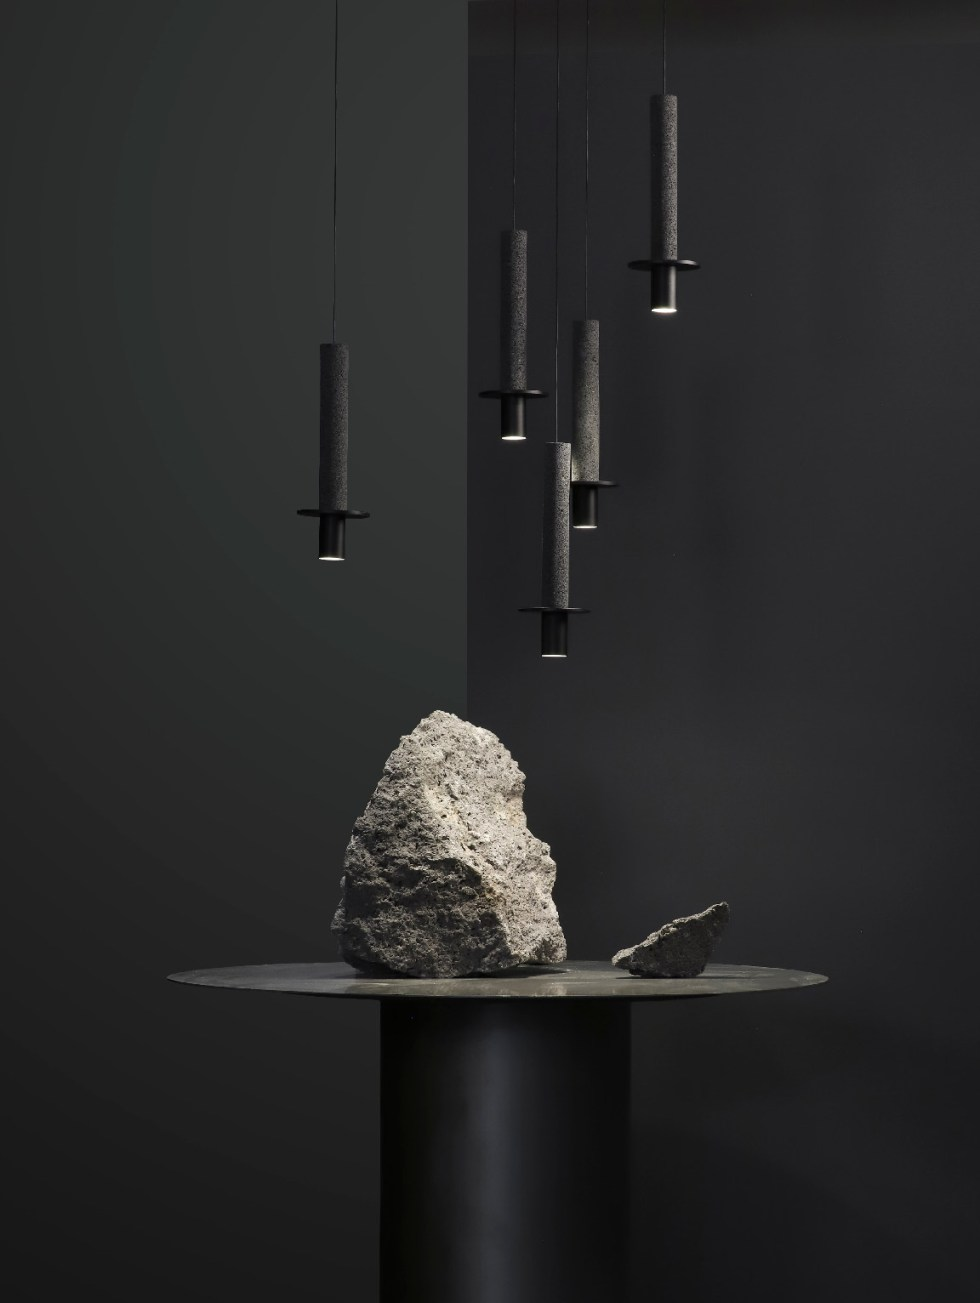 Meta David pompa, meta black composition volcanic rock